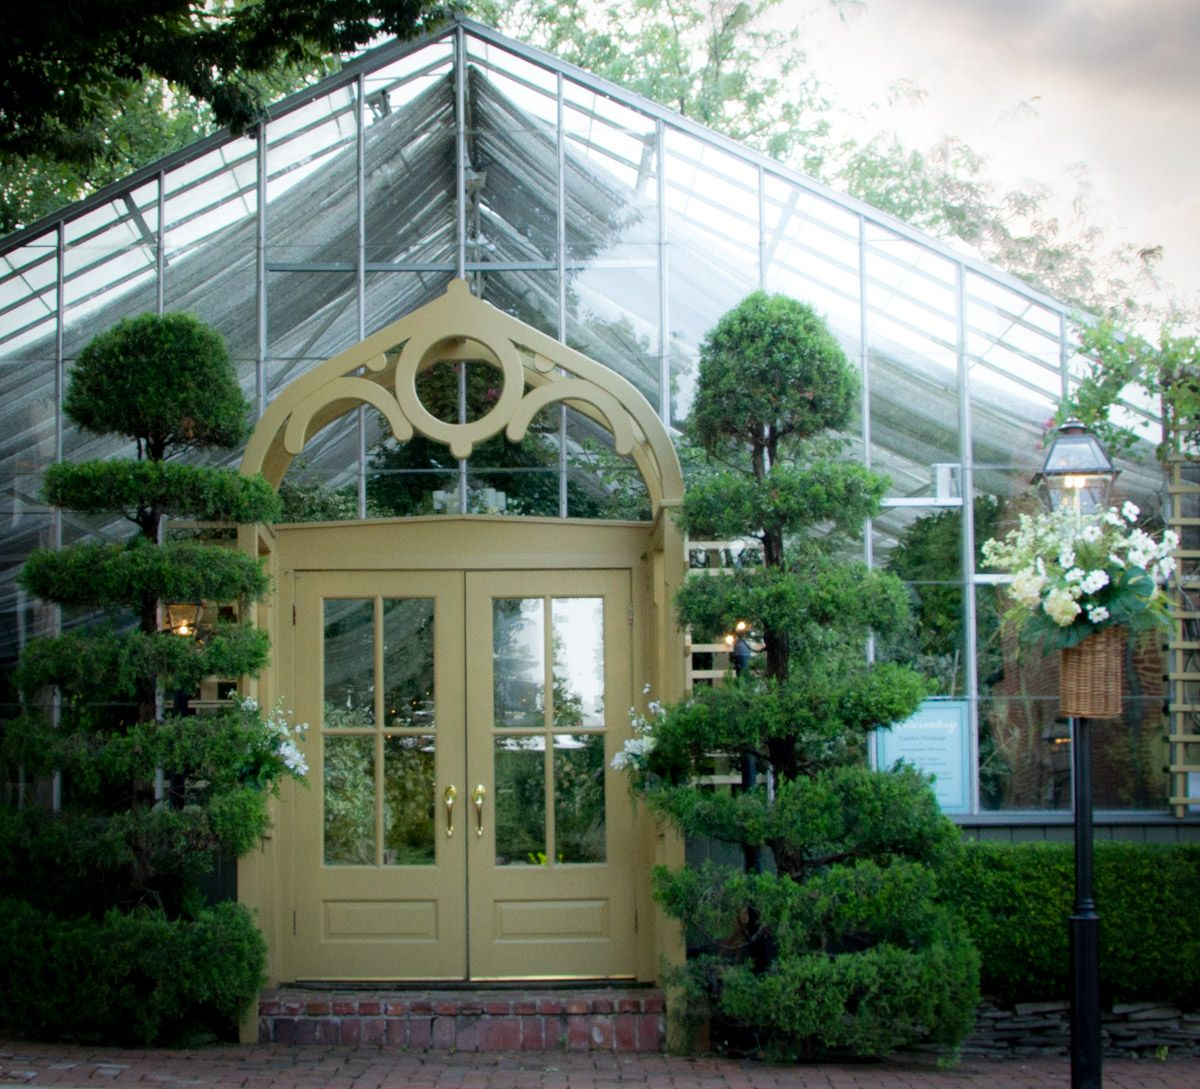 The Conservatory Is An All Glass Tropical Gardenhouse Wedding Venue Located In St Charles Mo St Lou Conservatory Garden Garden Wedding Venue Wedding Venues